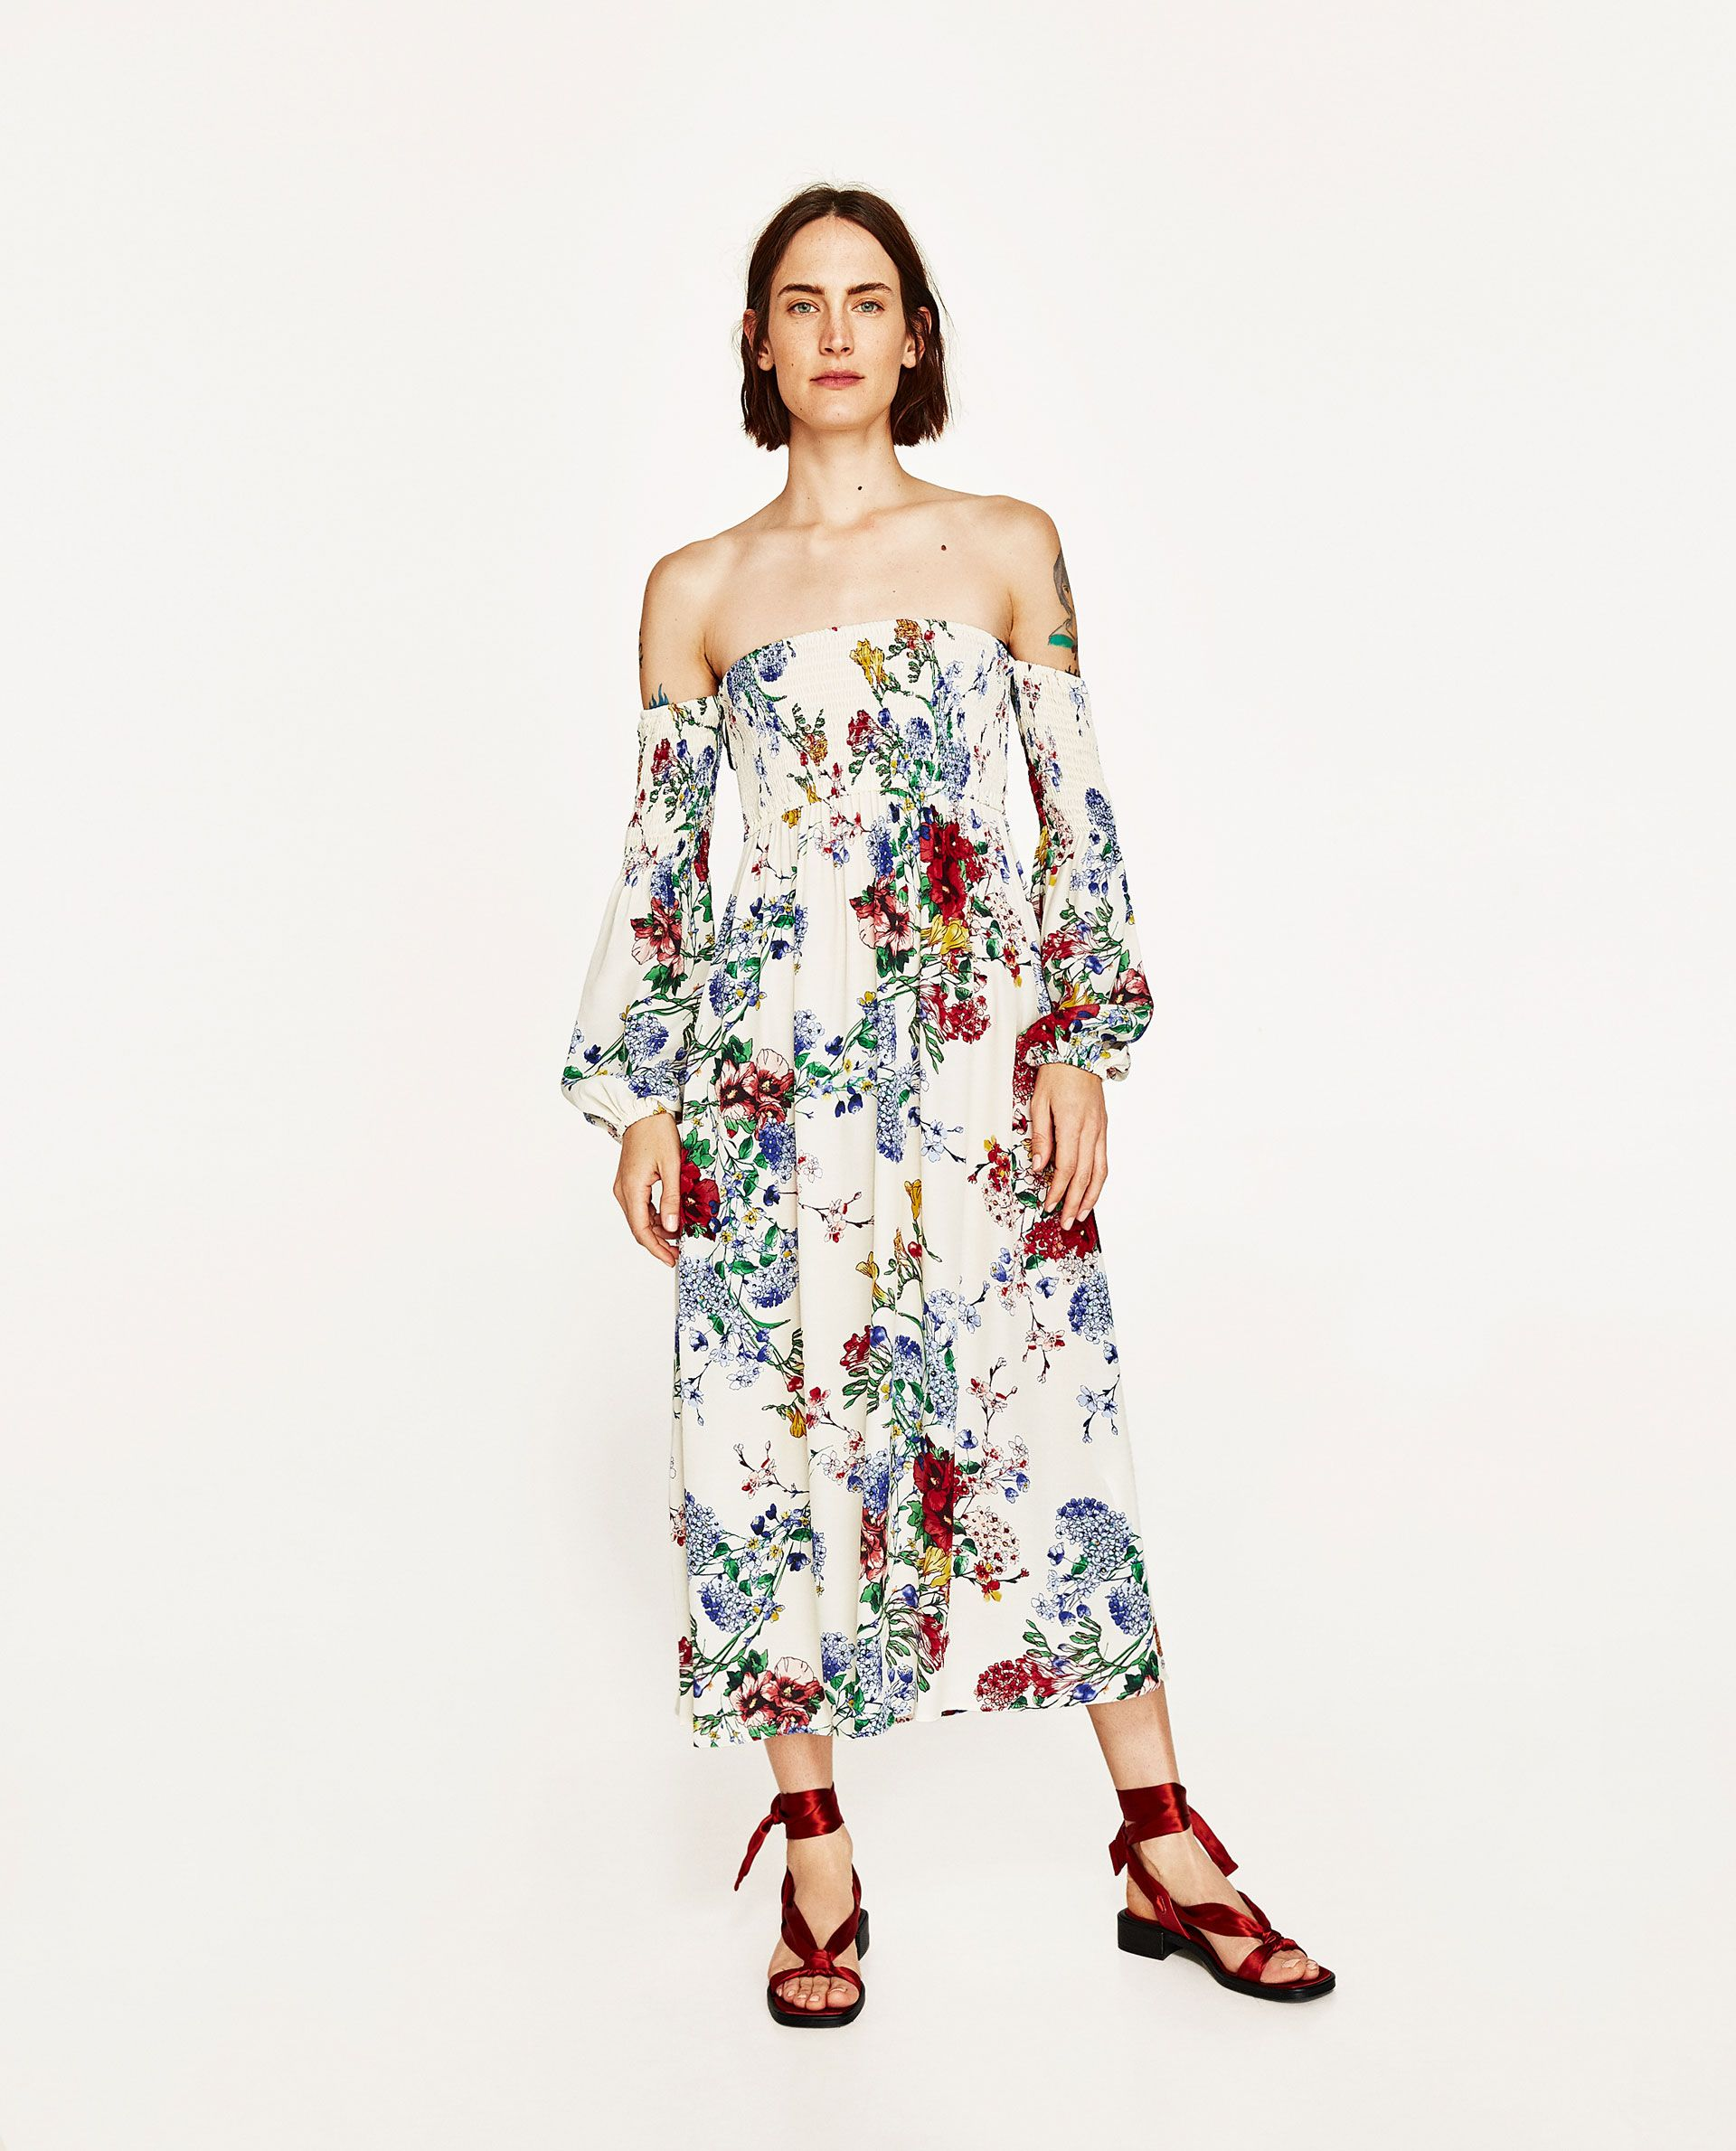 Zara White Floral Maxi Off The Shoulder Dress Gift Guide